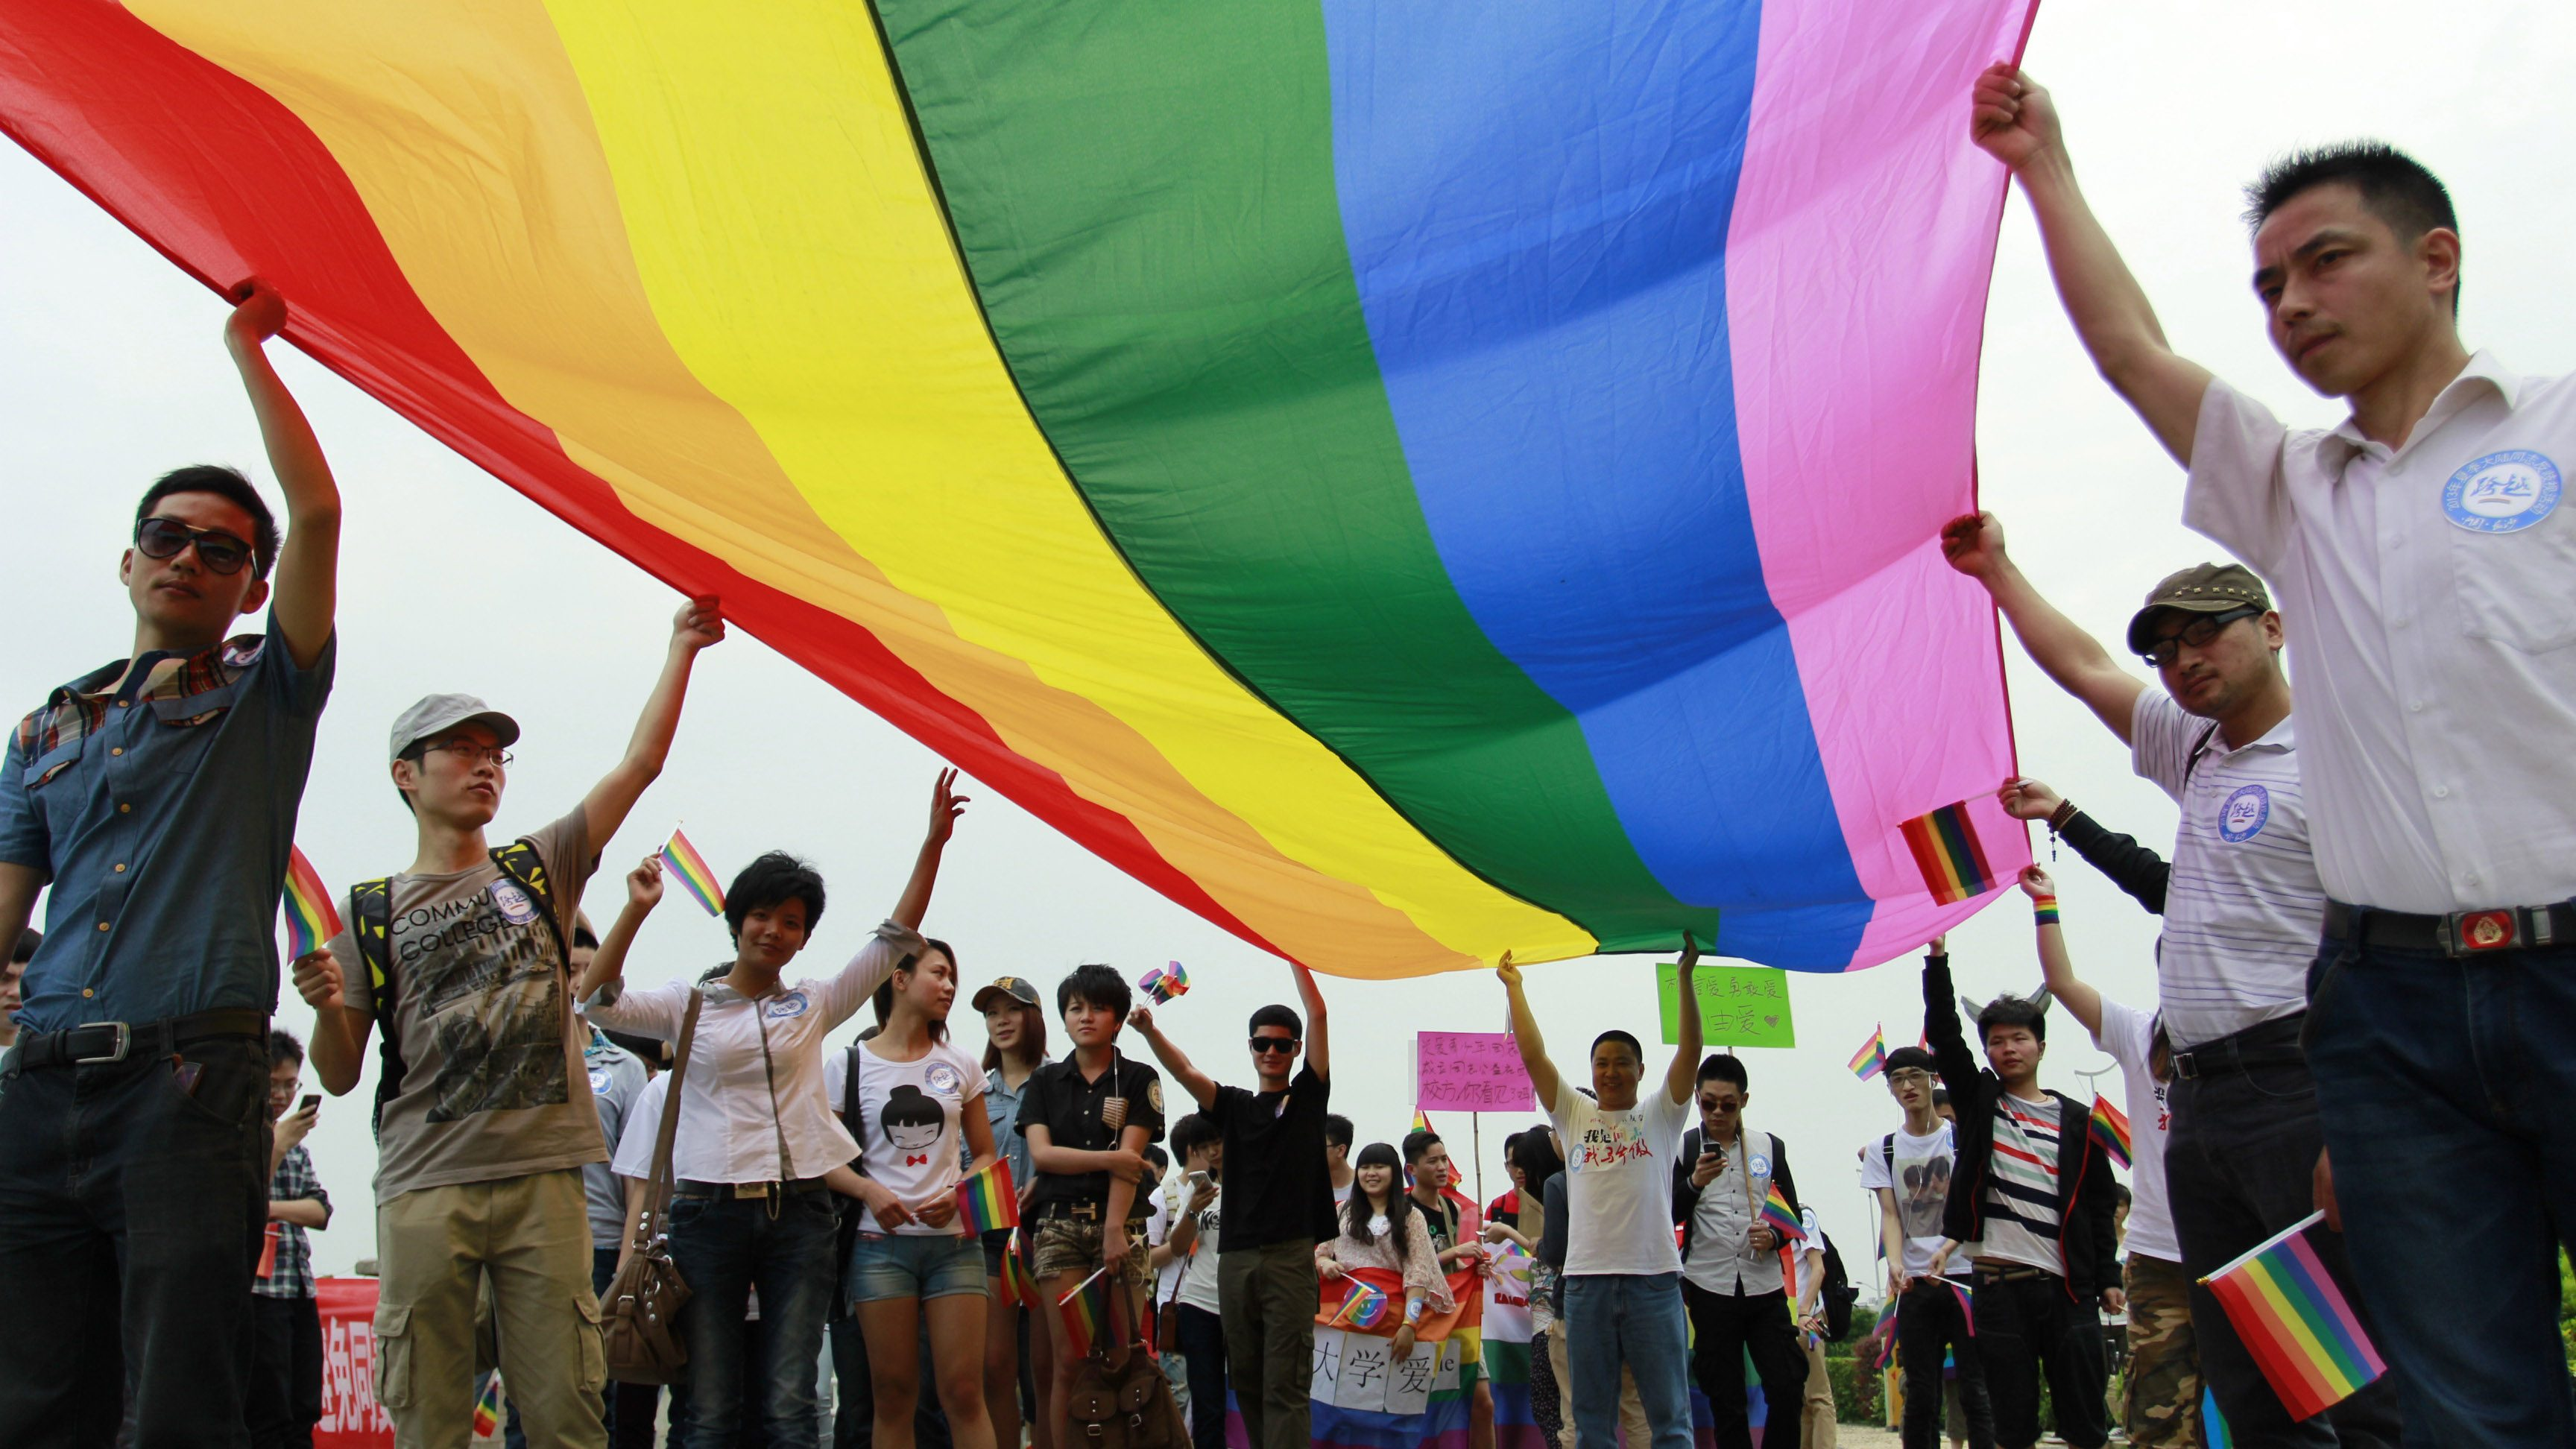 Activists brandishing a rainbow flag attend a gay pride procession in Changsha in South China's Hunan province, 17 May 2013. According to reports, around a hundred protesters attended a gay pride march calling for understanding and tolerance of sexual minorities.